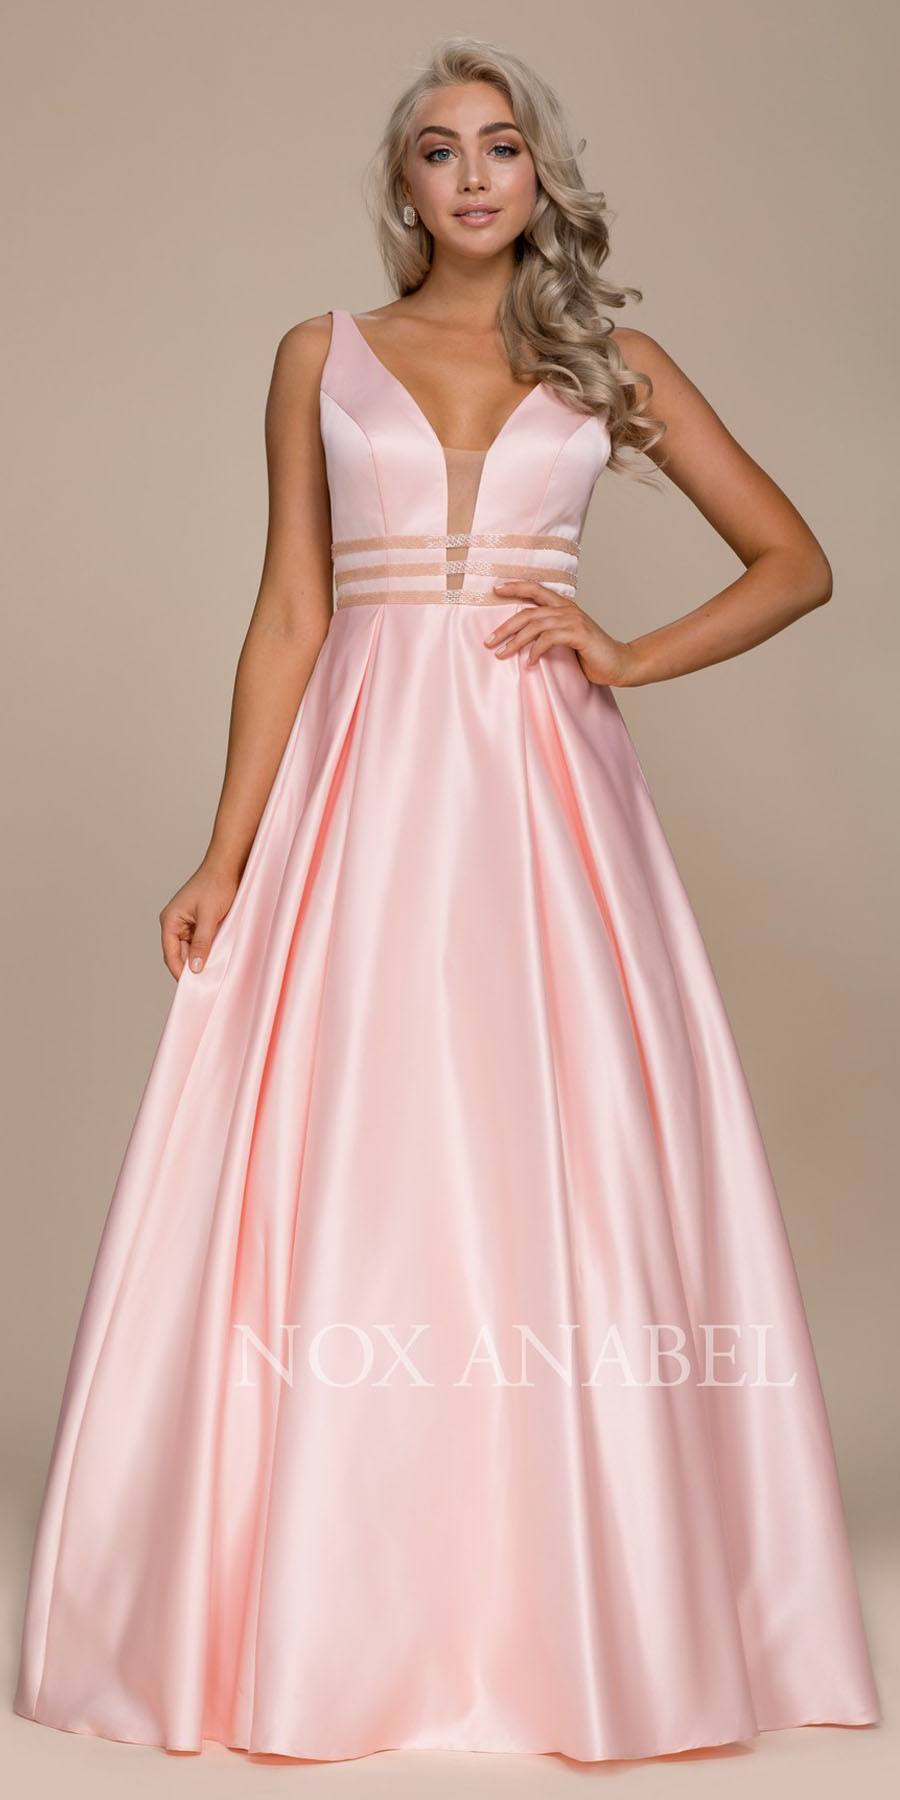 Nox Anabel M130 Blush V-Neck Long Prom Dress Sheer Cut Out with ...